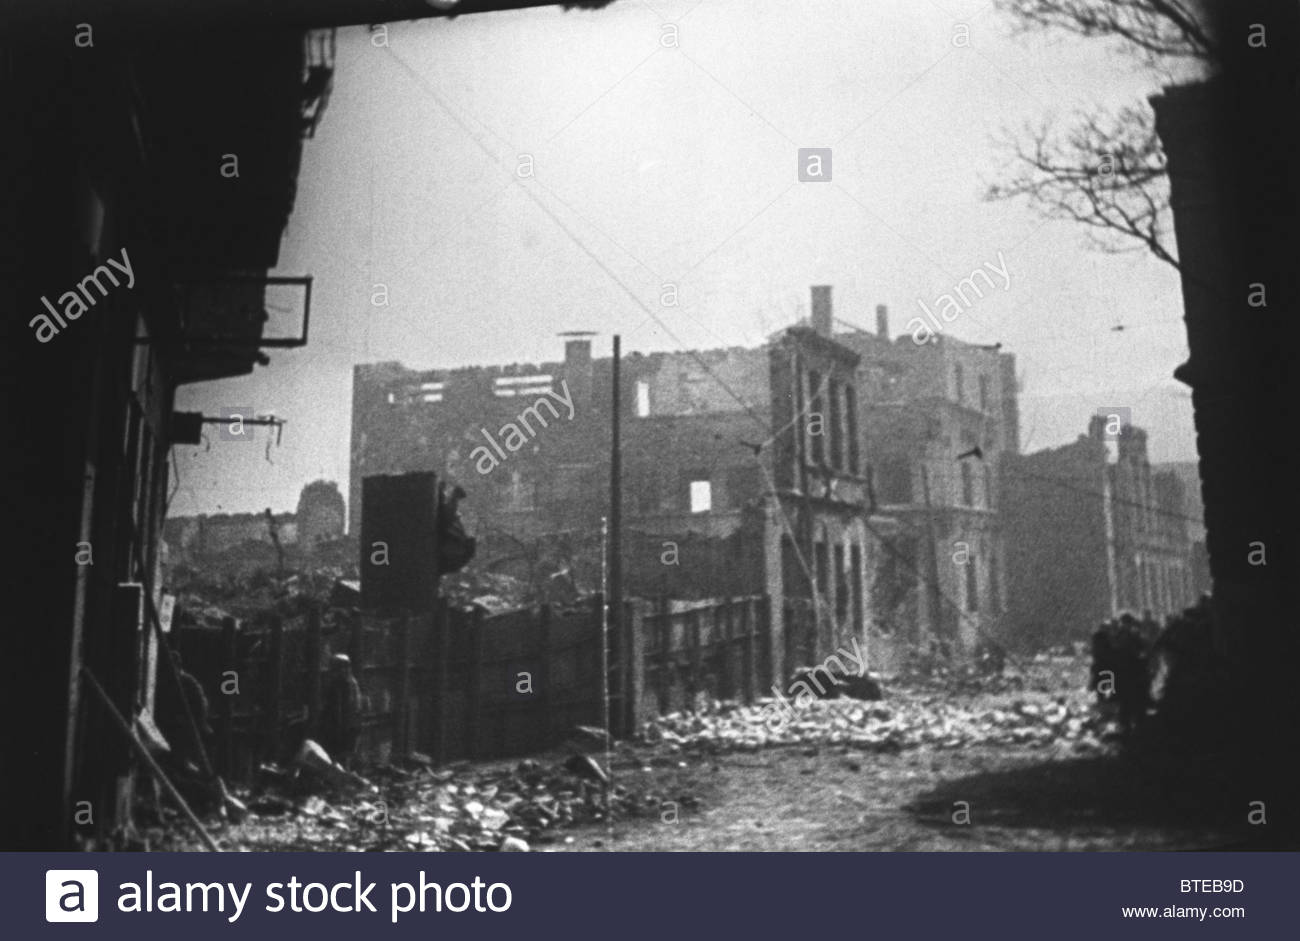 Ruins of Kaliningrad in the aftermath of war, 1945 - Stock Image